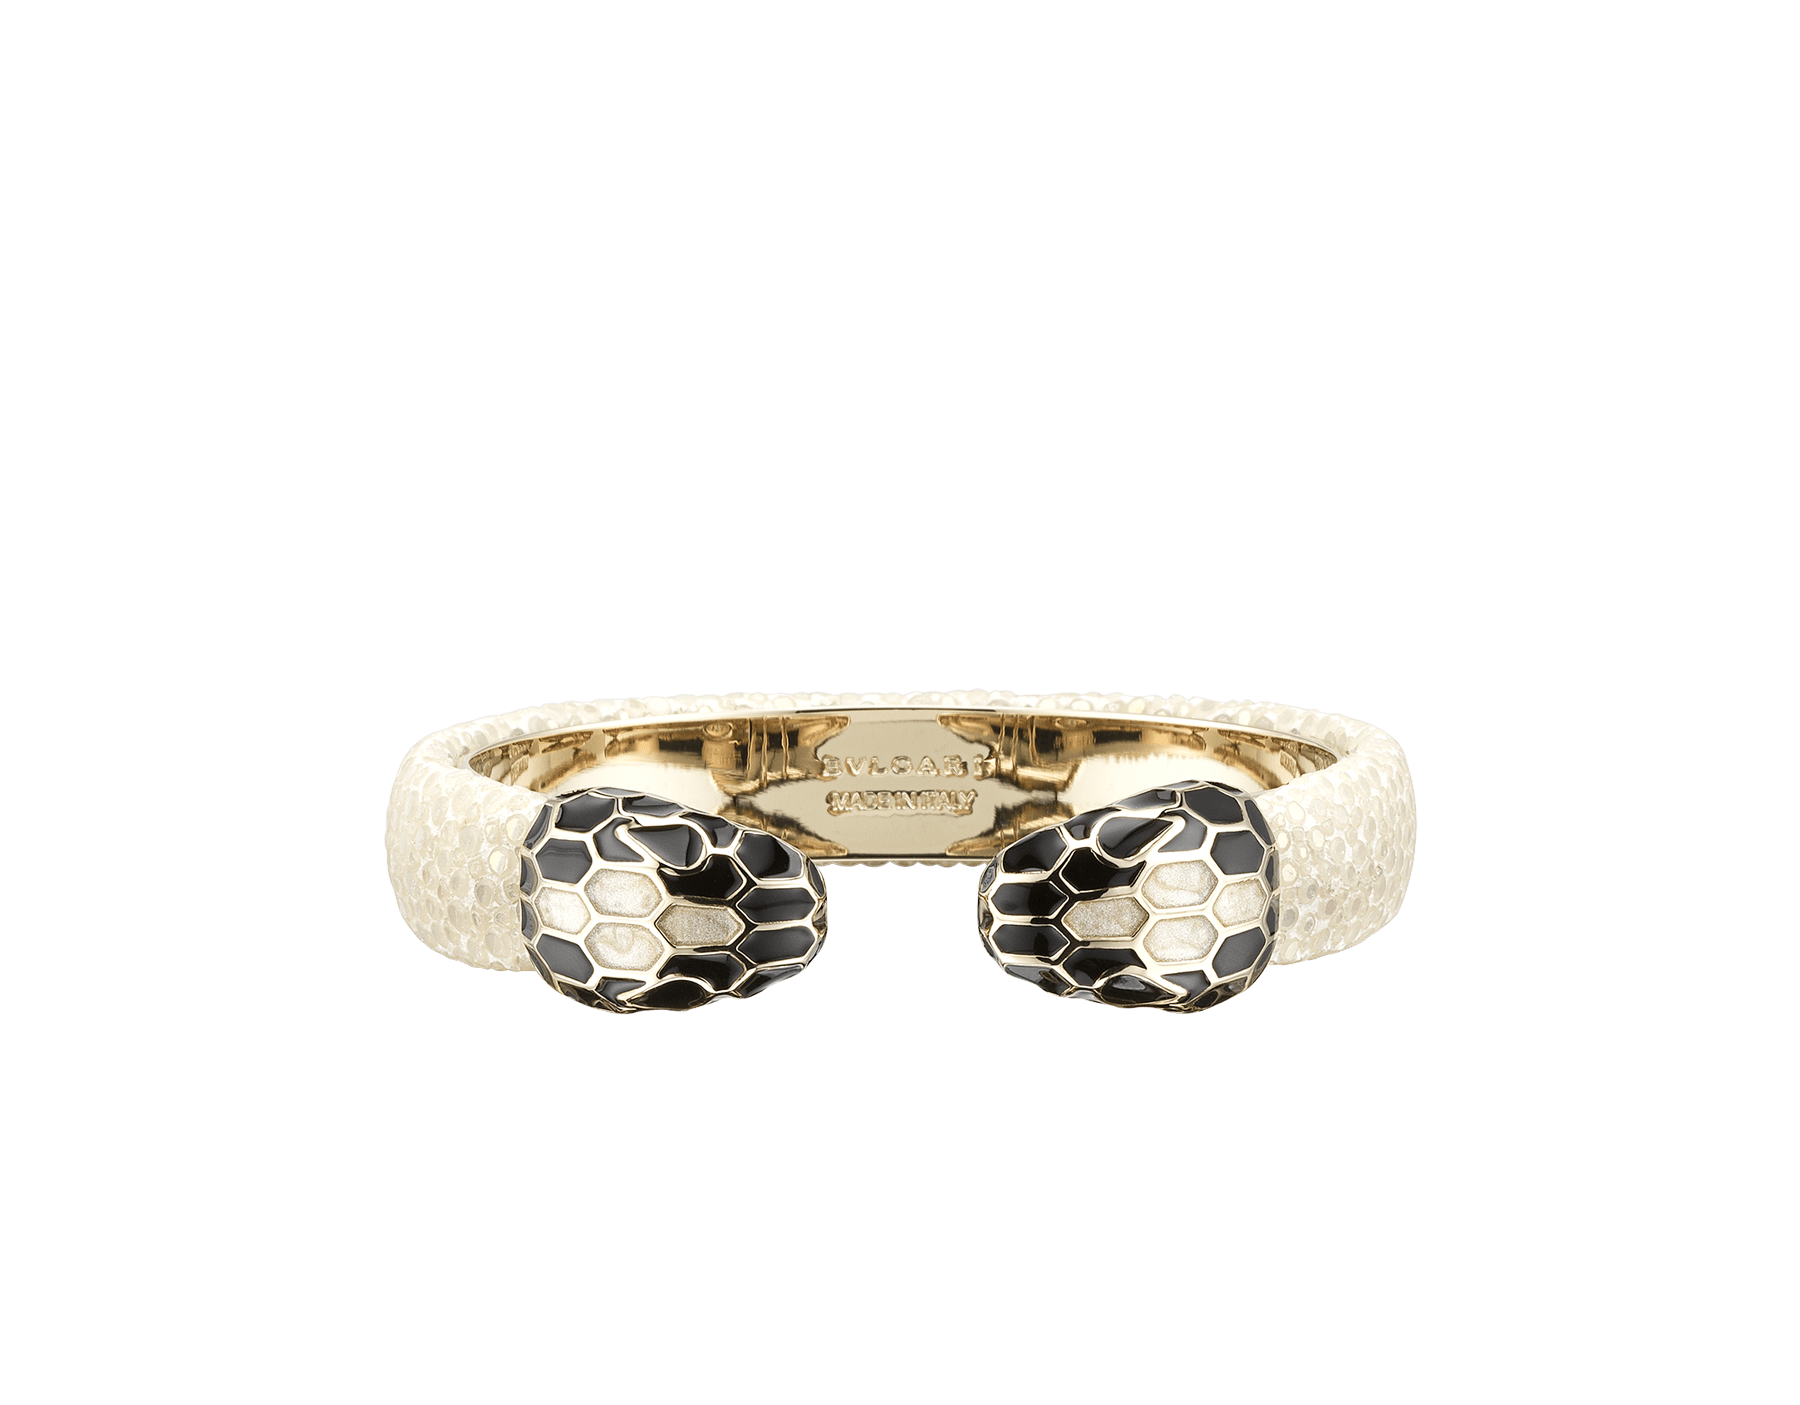 """Serpenti Forever"" bangle bracelet in milky opal galuchat skin with a pearled effect and light gold plated brass hardware. Perfect to accessorise a day-to-night look, this model features an iconic contraire snakehead décor enamelled in black and pearled white agate and finished with seductive black enamel eyes. SPContr-PG-MO image 1"